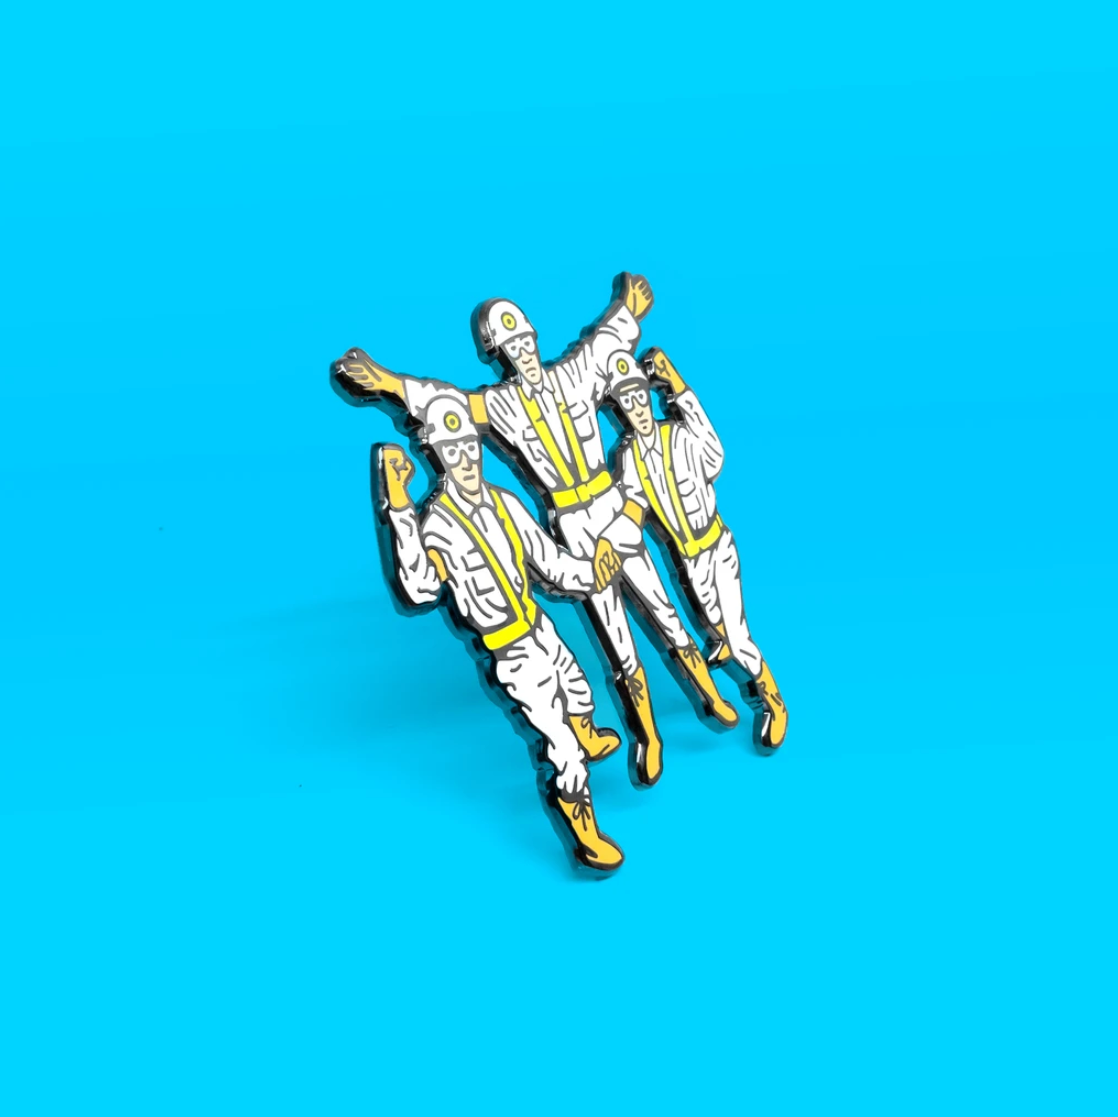 PSA Press - Intergalactic (Beastie Boys) Enamel Pin